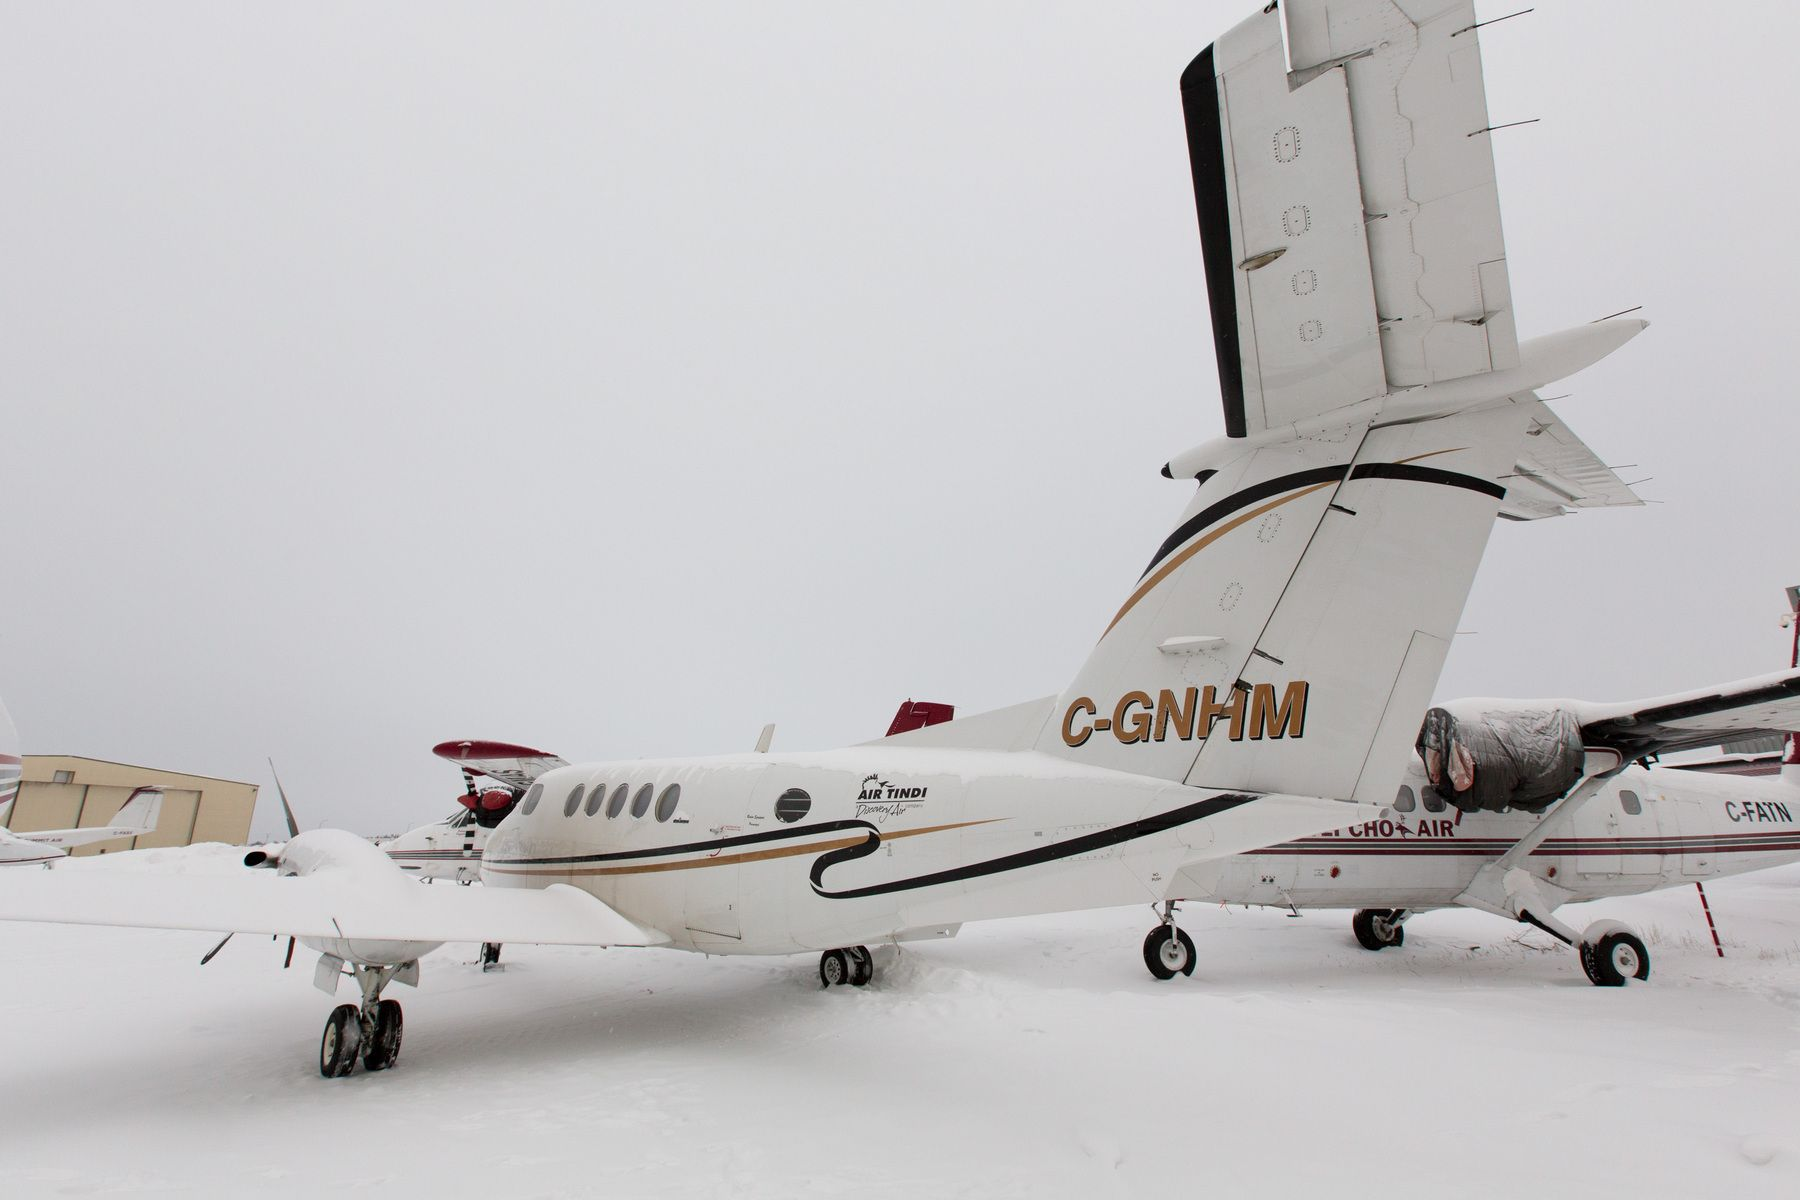 1976 Beechcraft King Air 200 for sale in Canada => http